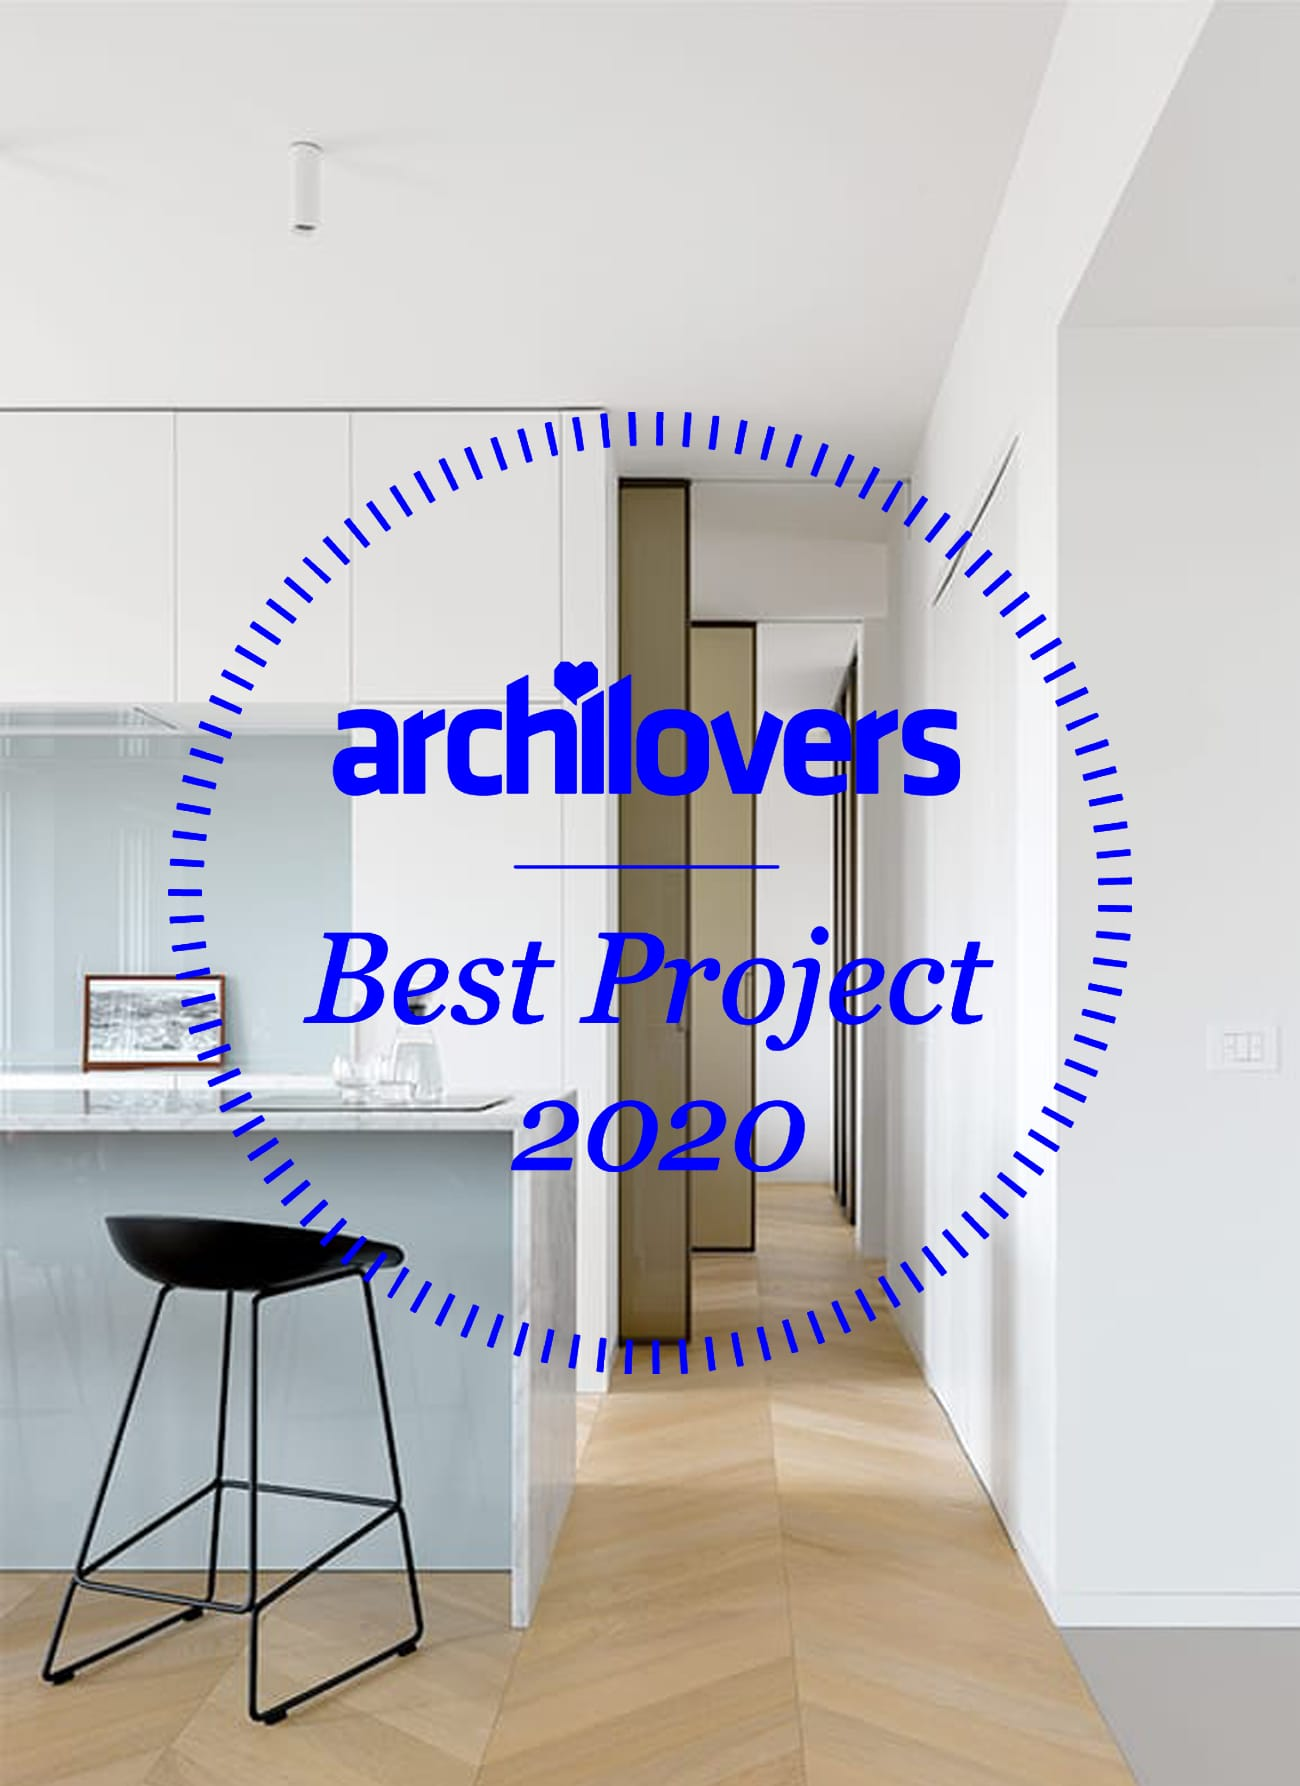 journal_archilovers2020_2